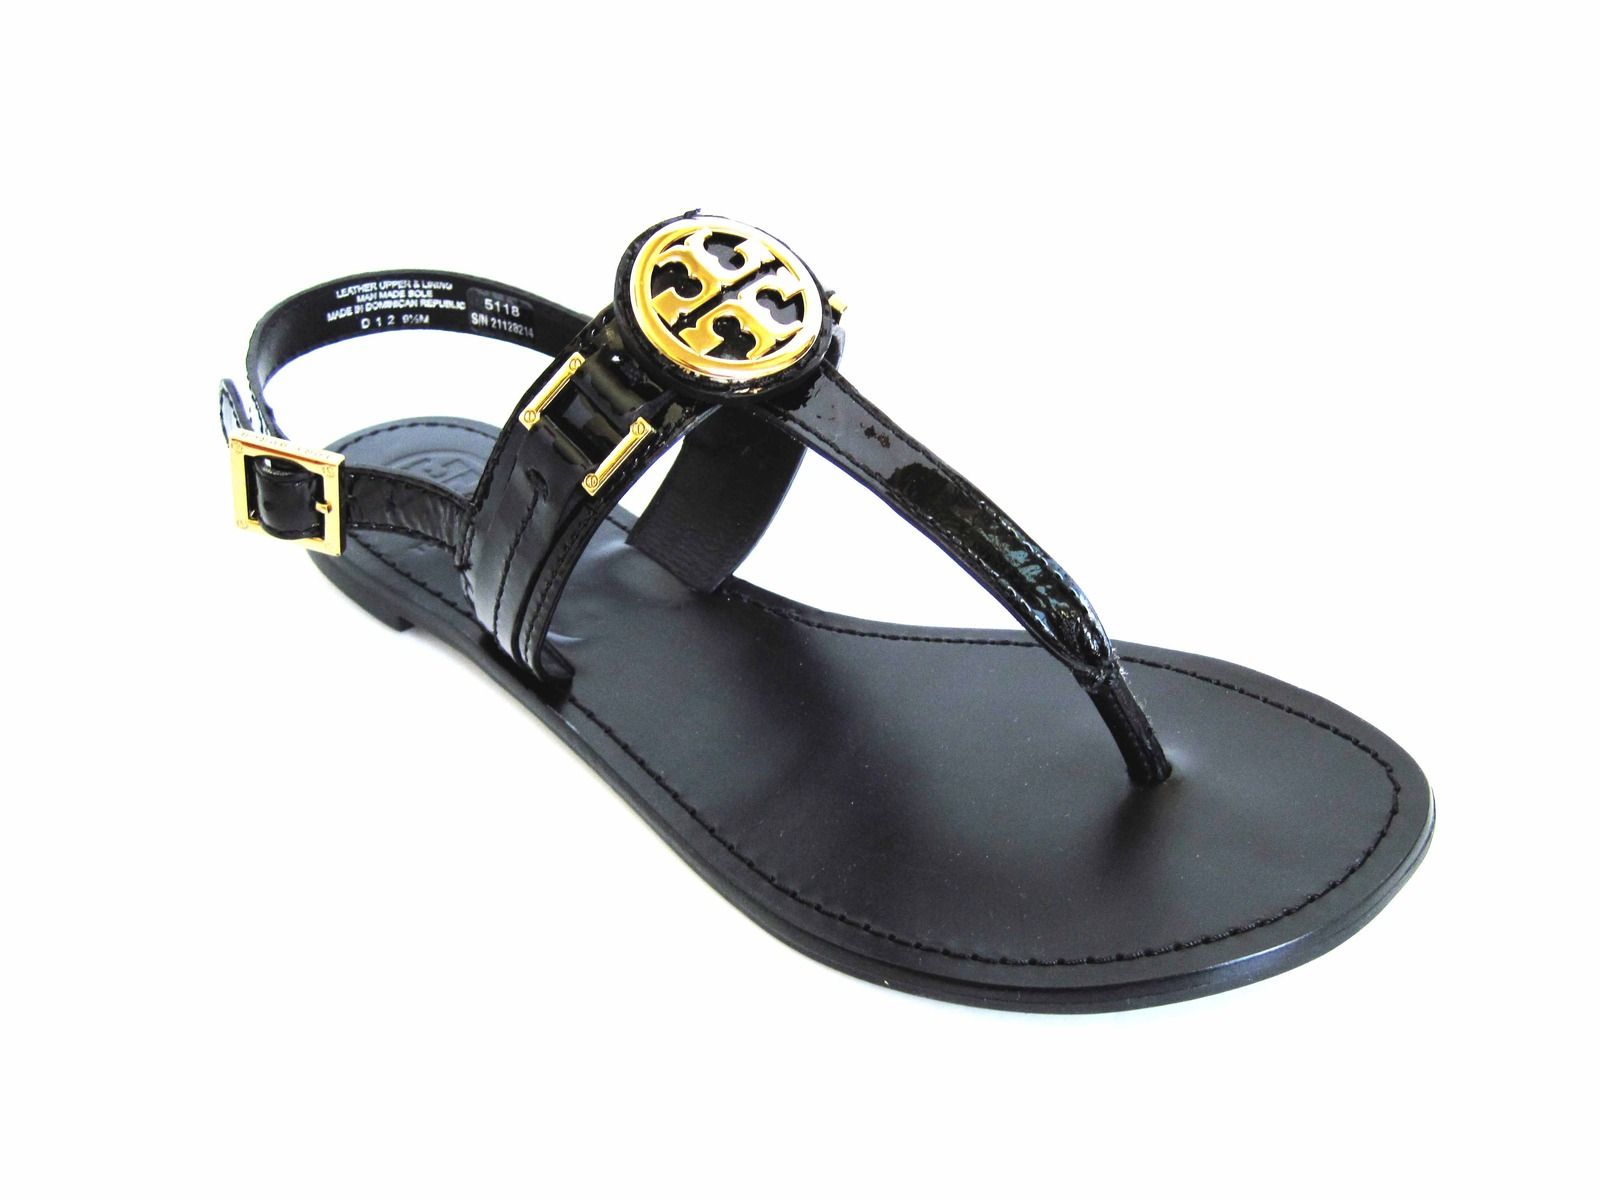 c45fb7a18c9 Tory Burch Patent Cassia Gold Logo Sandal and 30 similar items